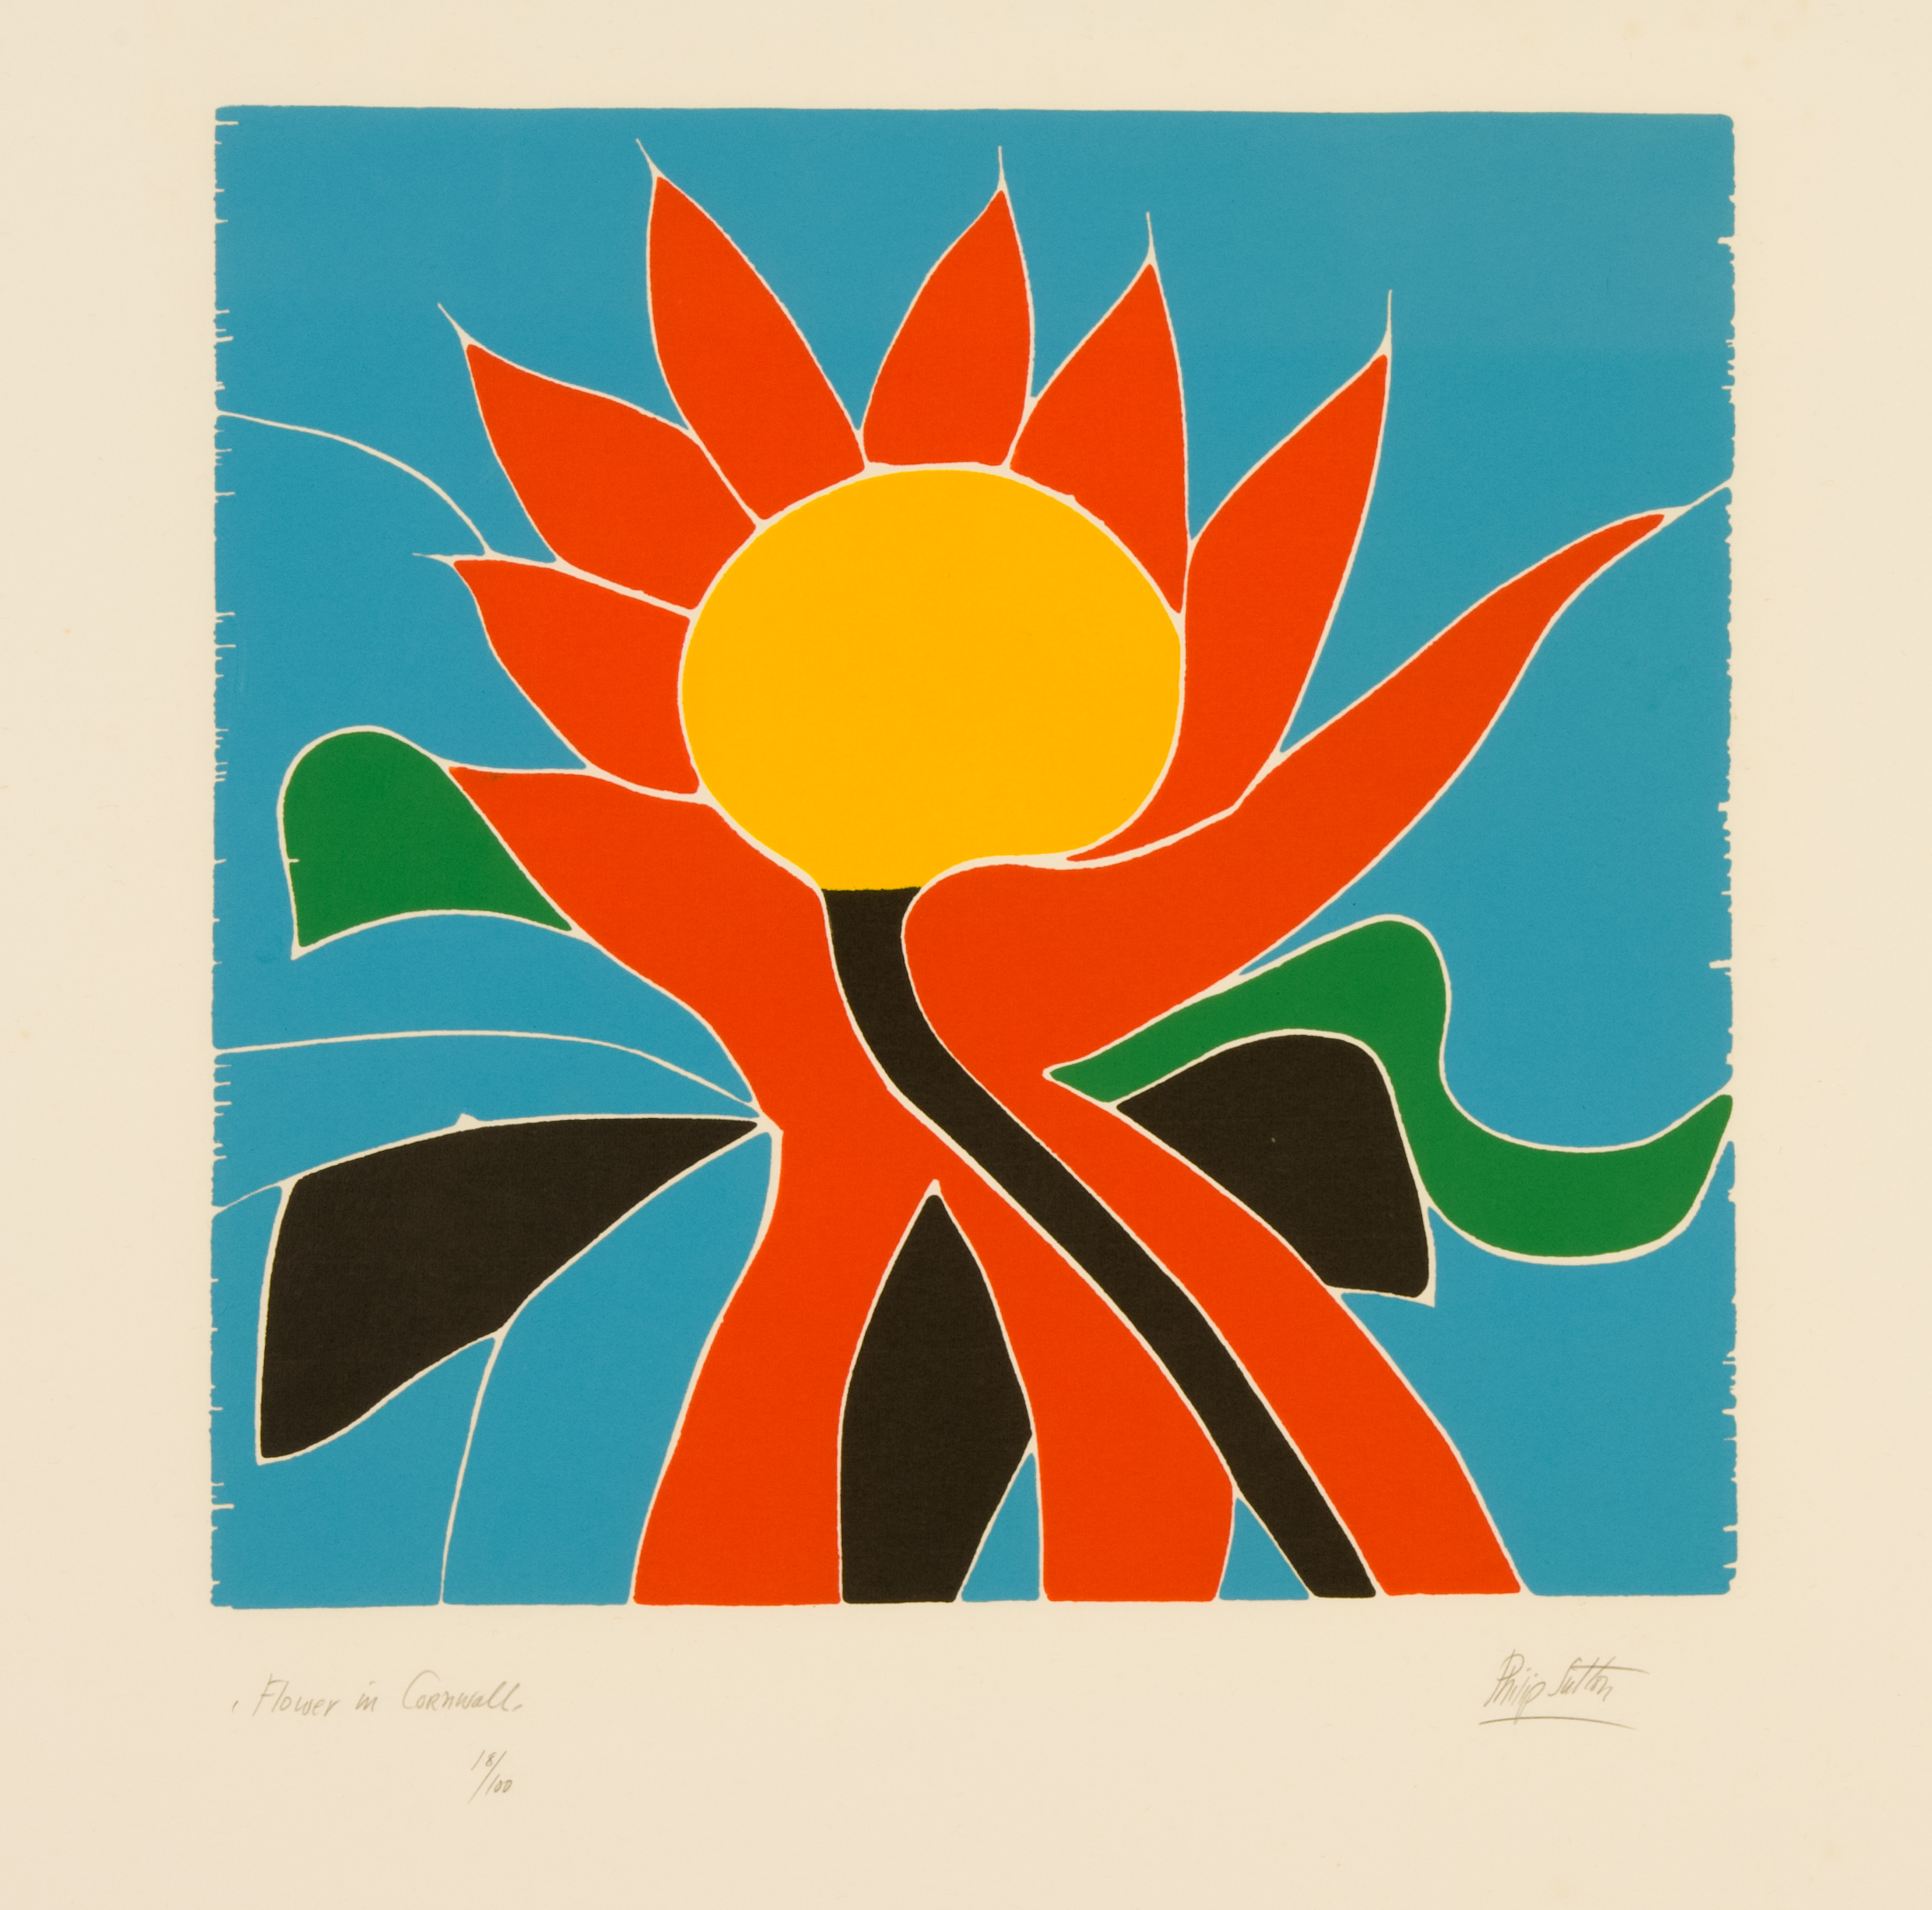 Philip sutton flower in cornwall signed woodcut ed 75 image size philip sutton flower in cornwall signed woodcut ed 75 image size 175 x 18 inches paper size 345 x 24 inches 1973 2000 unframed sciox Gallery